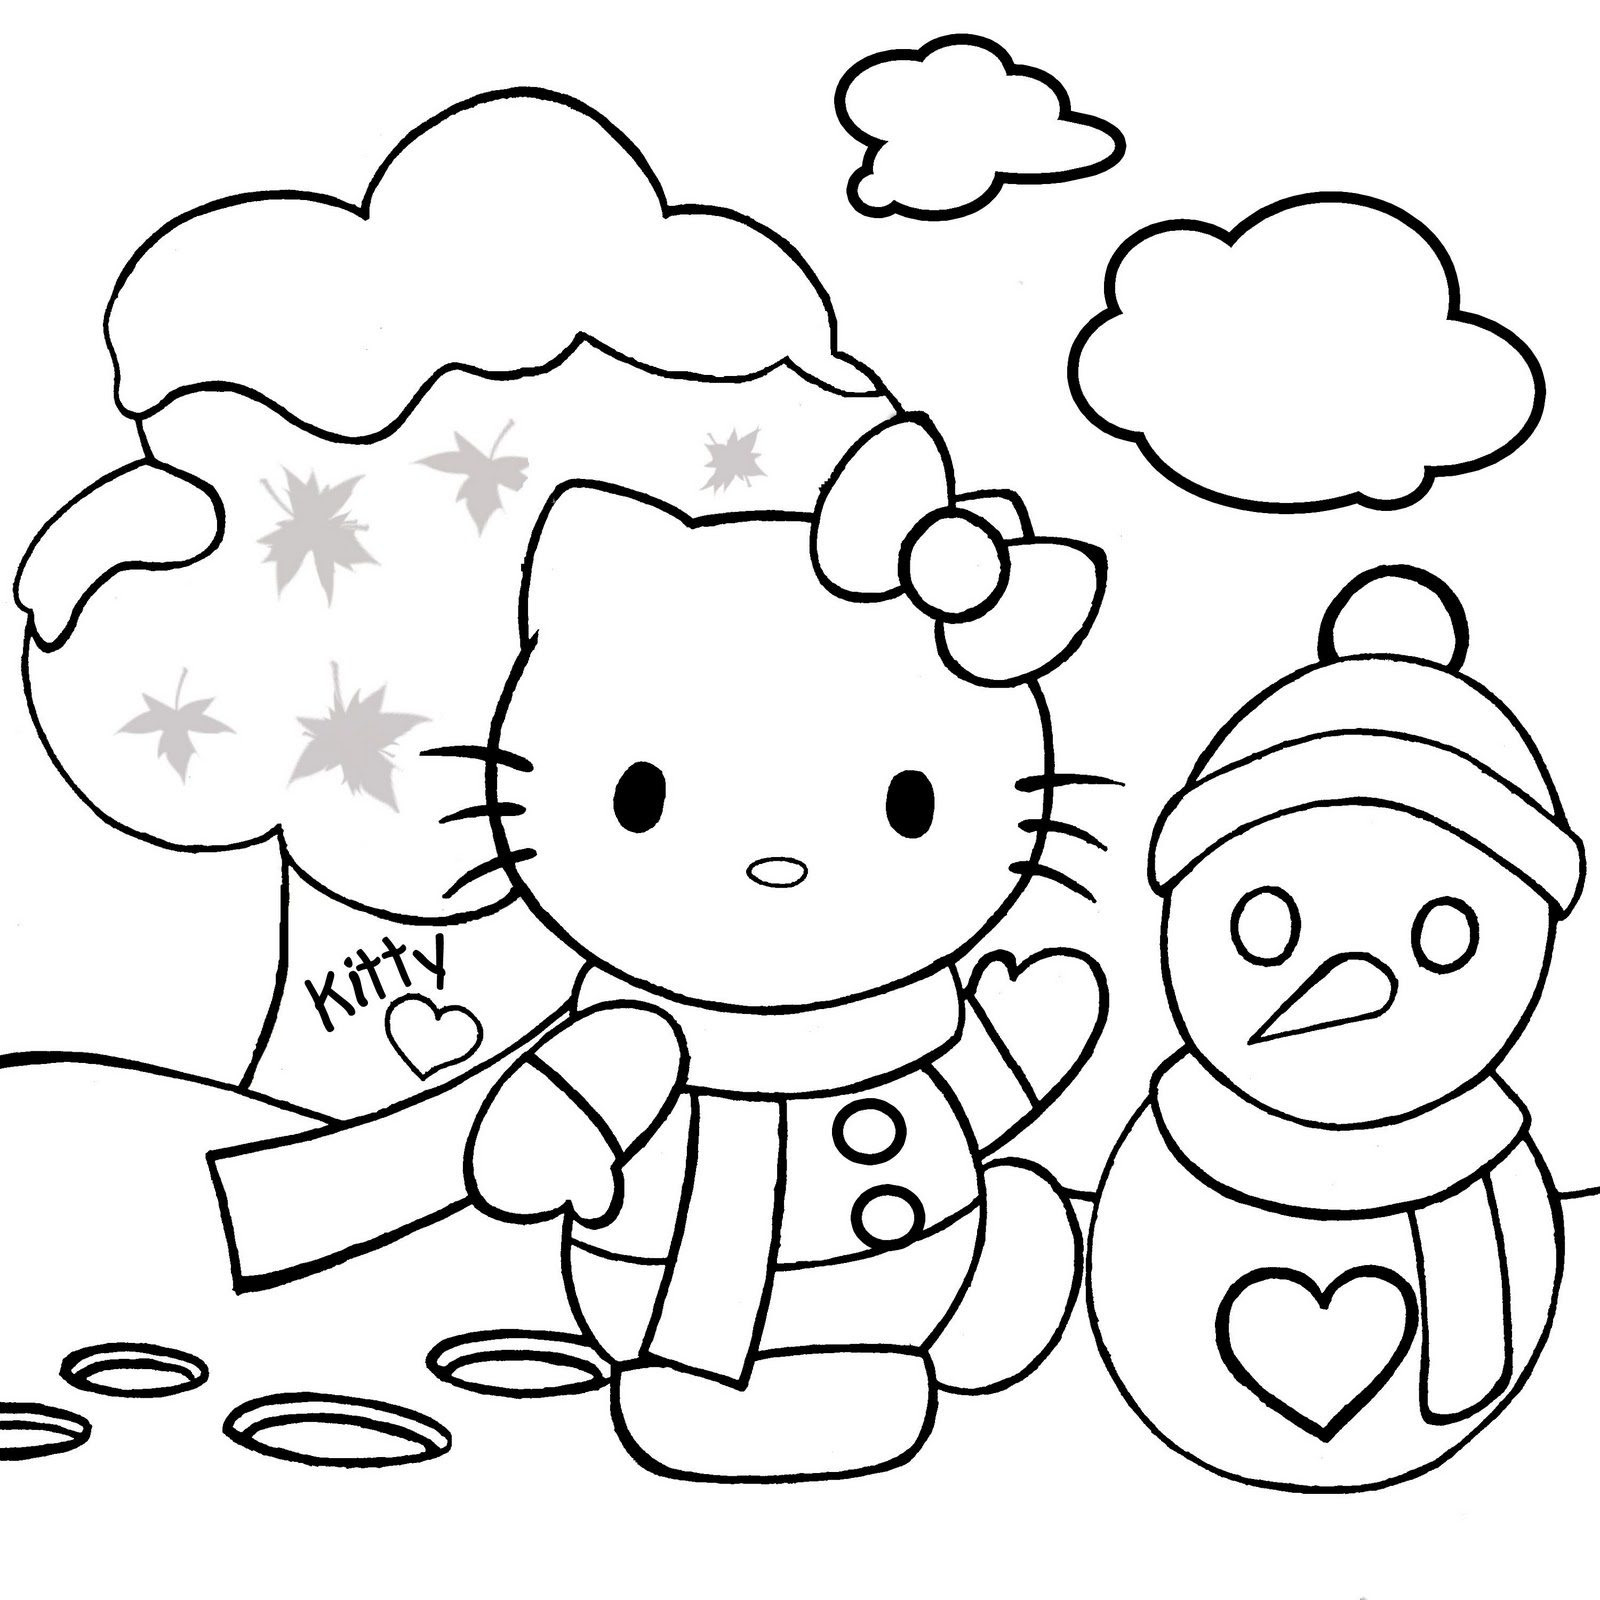 Kitty Coloring Pages Free Download Best Kitty Coloring Pages On